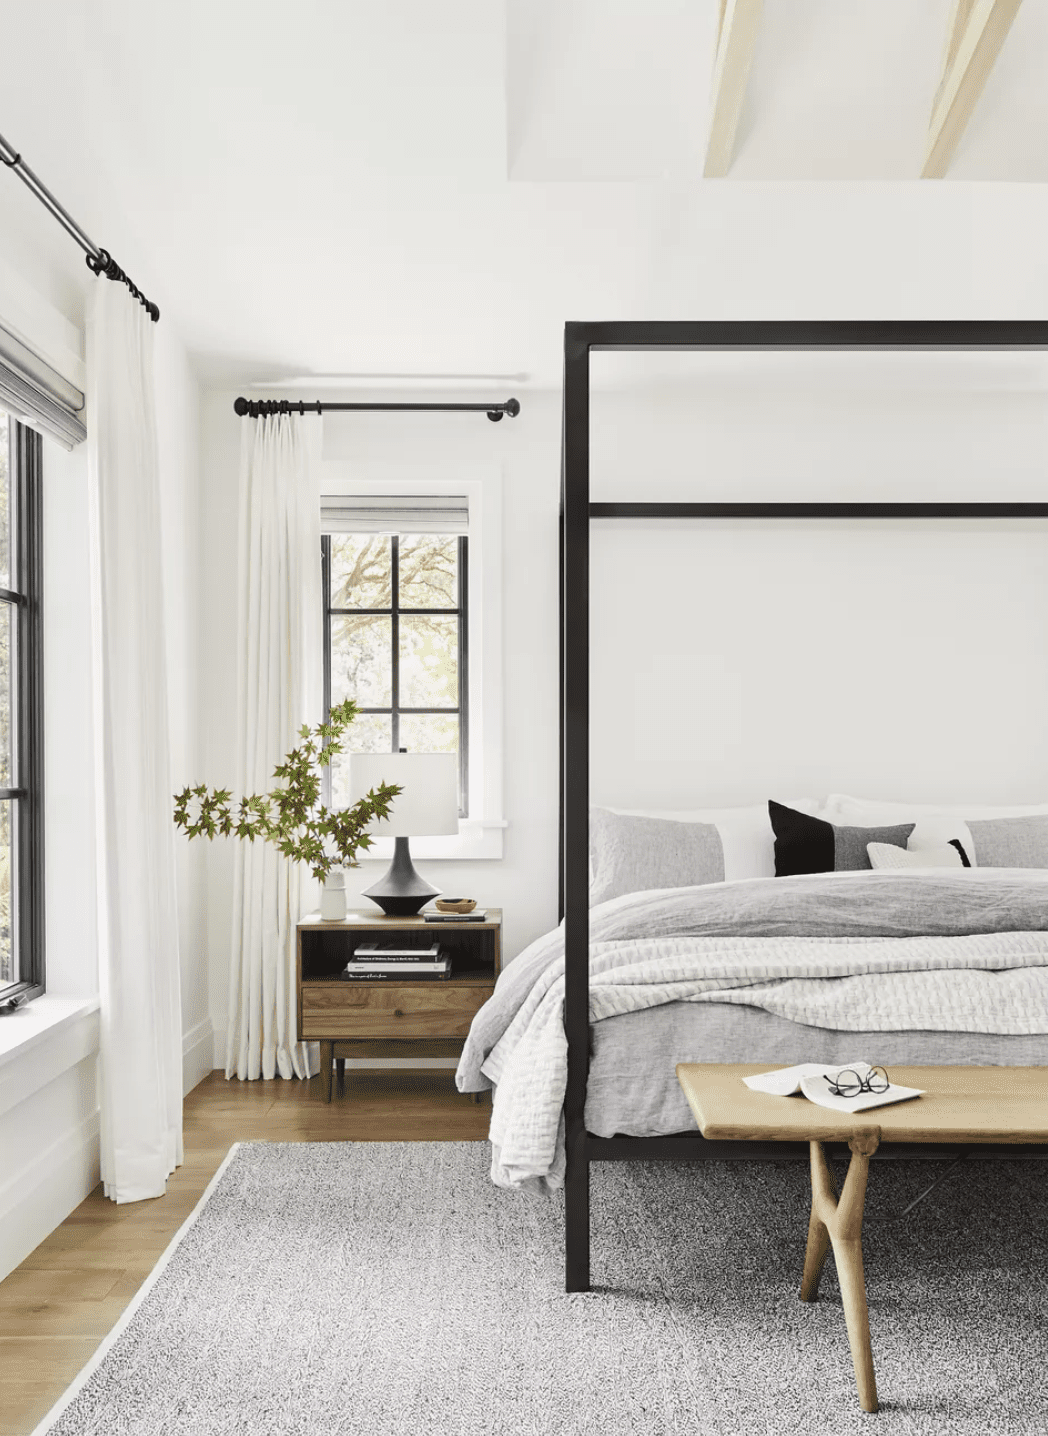 Zen bedroom with black and white tones, a four post bed, and light floor to ceiling curtains